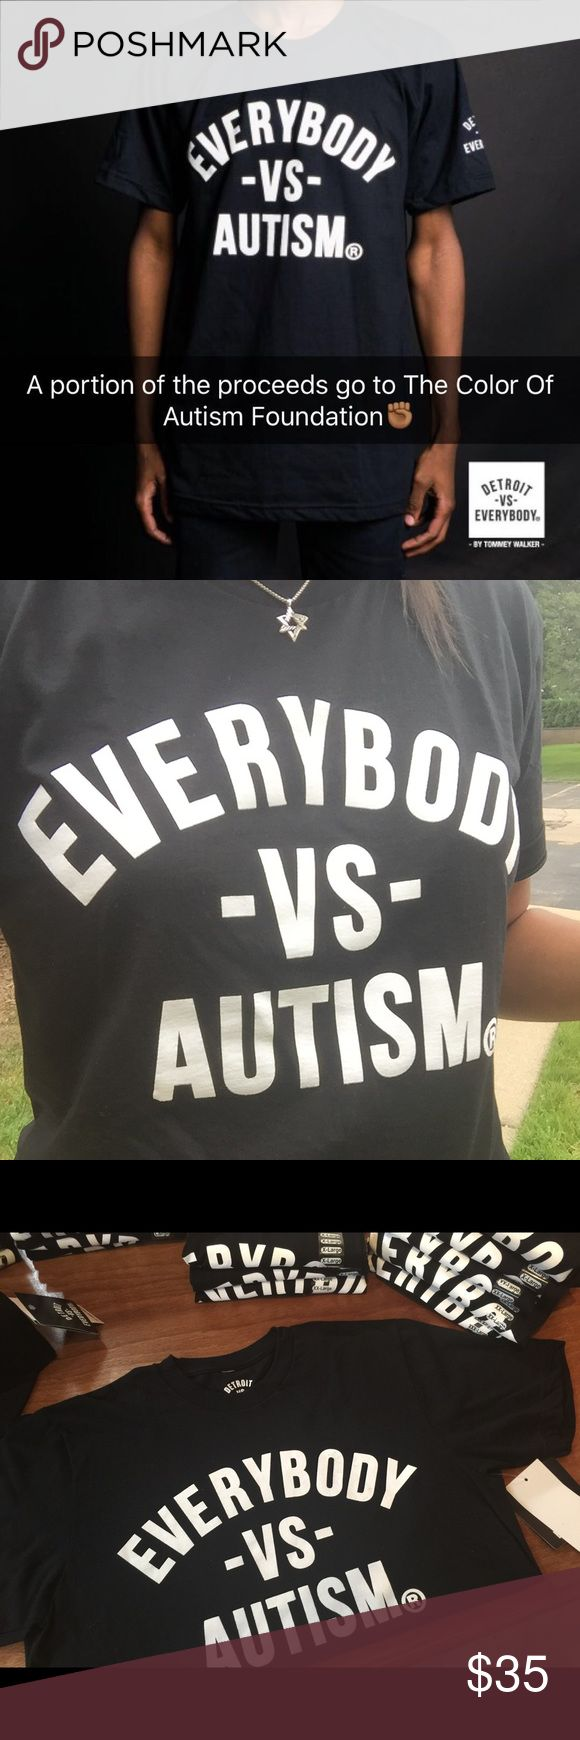 EVERYBODY VS AUTISM SHIRTS Do Not Buy This Listing Hello All, I have tagged you in this listing as I'm looking to spread the word about the availability of these shirts. These shirts are from the famed brand, DETROIT VS EVERYBODY. They have graciously agreed to donate a portion of the proceeds to The Color Of Autism Foundation. It's the only autism organization in Michigan that sole purpose is to serve underserved communities. Though their outreach is national, they are based in Michigan…